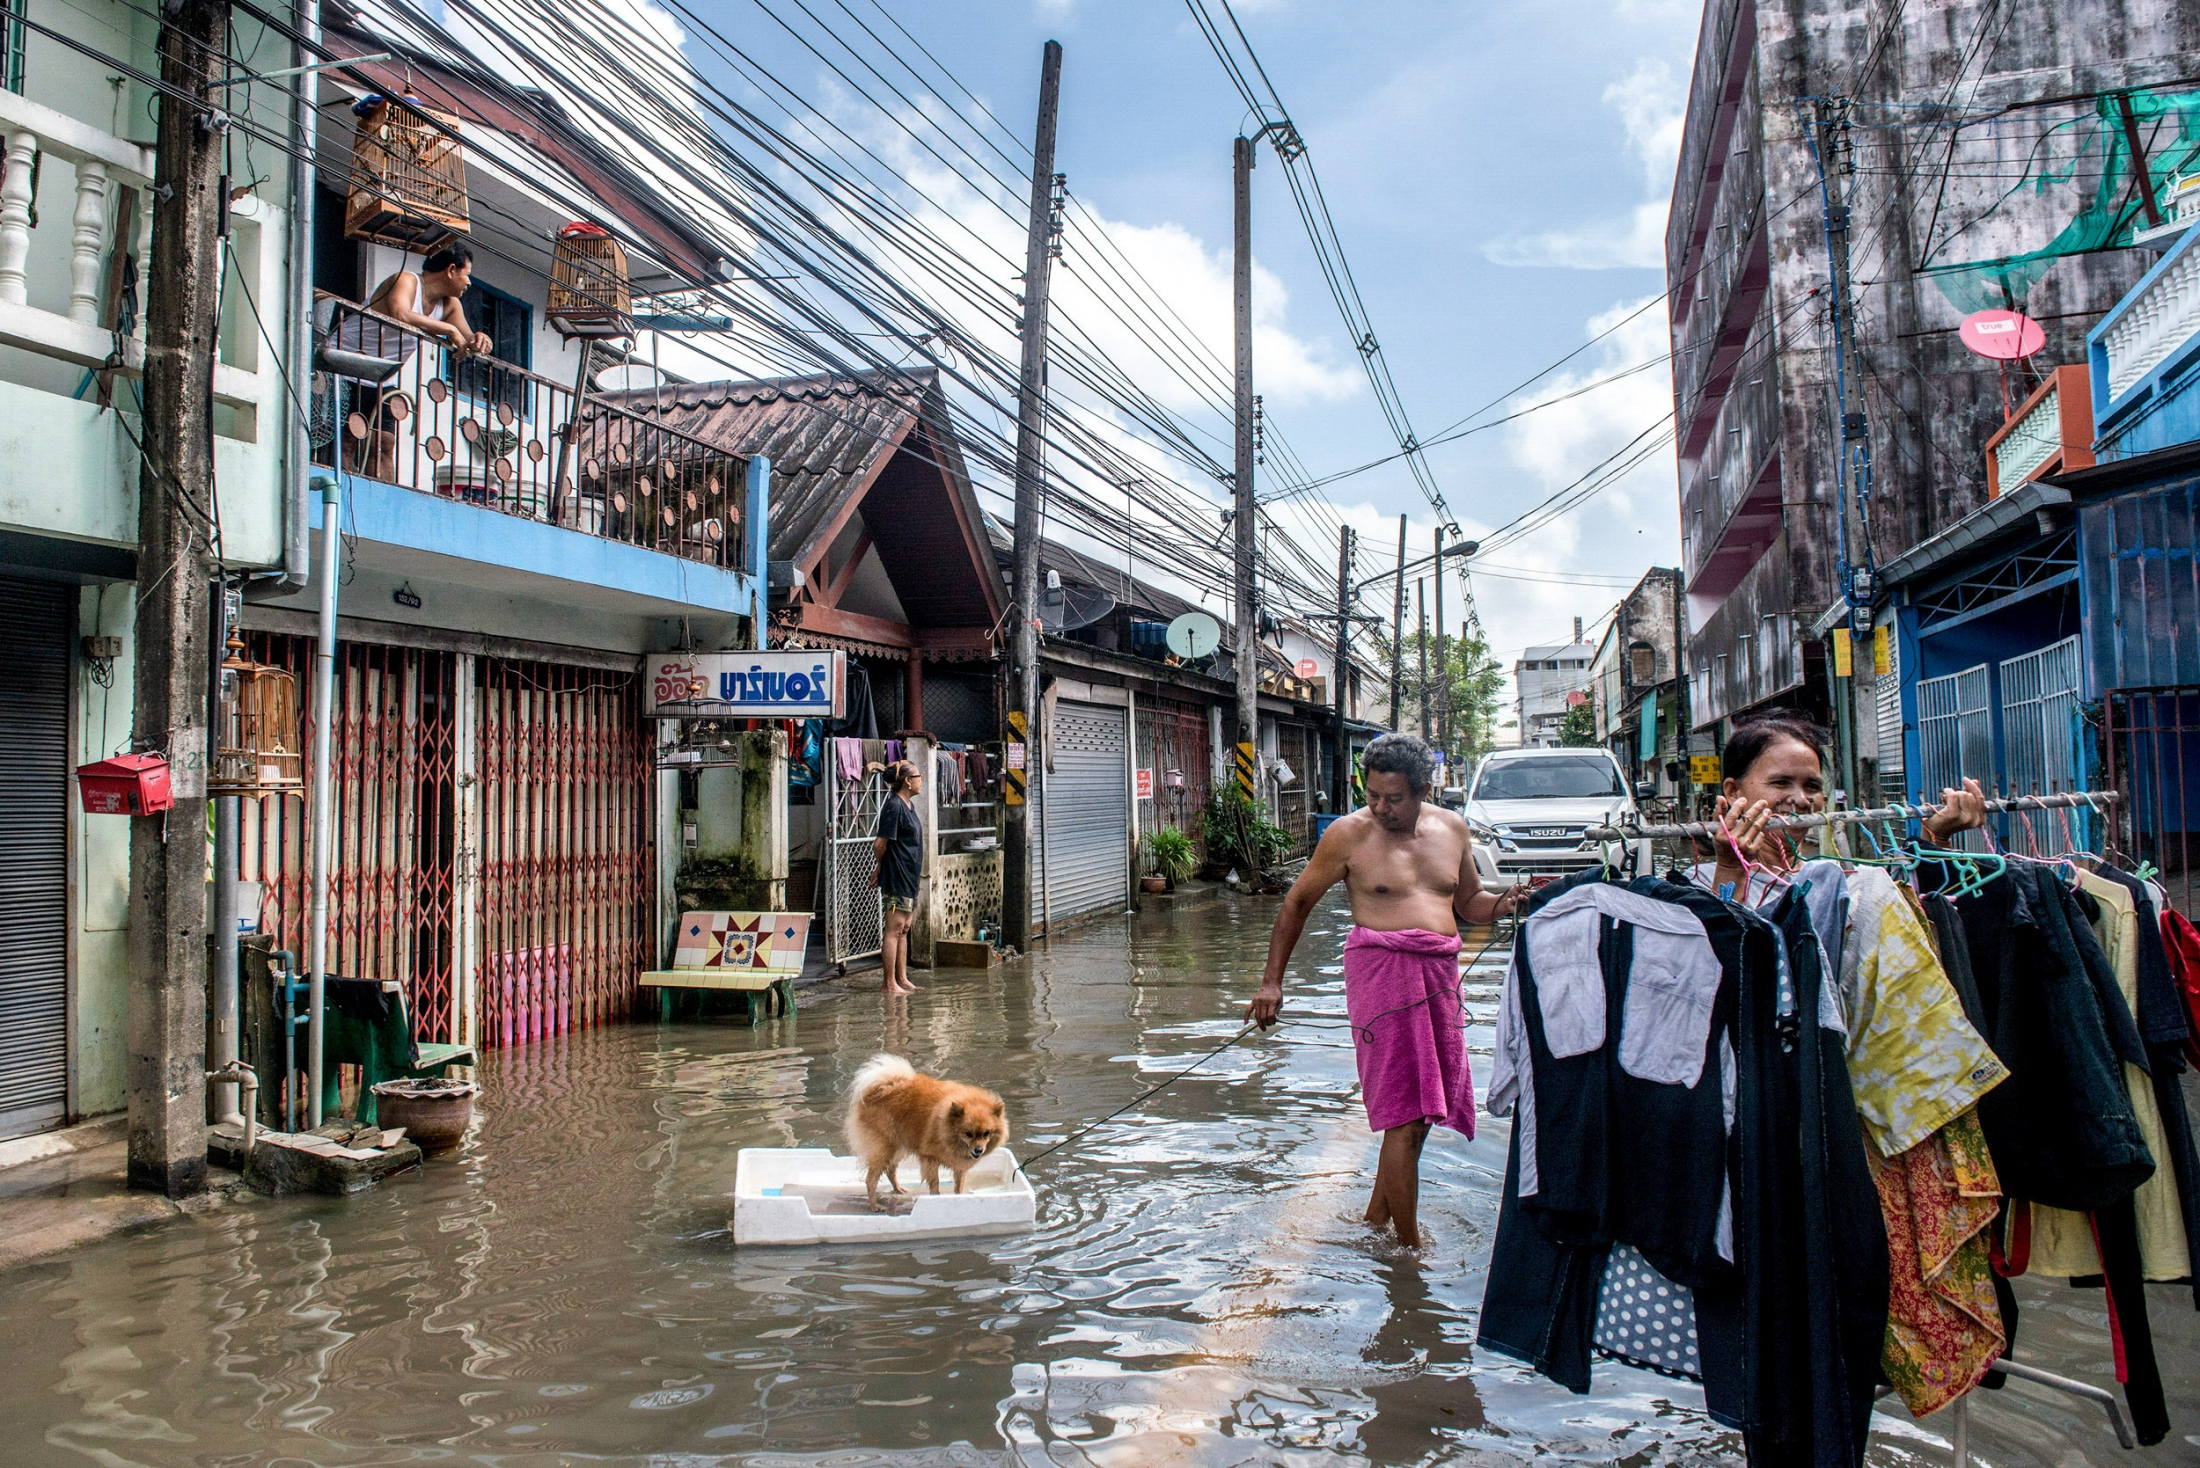 Local villagers are clearing up the mess and create to survey the damages caused from flash flooding resulting from unseasonal, heavy rains three times in one month. Nakhon Ratchasima, Thailand-January 22, 2017.